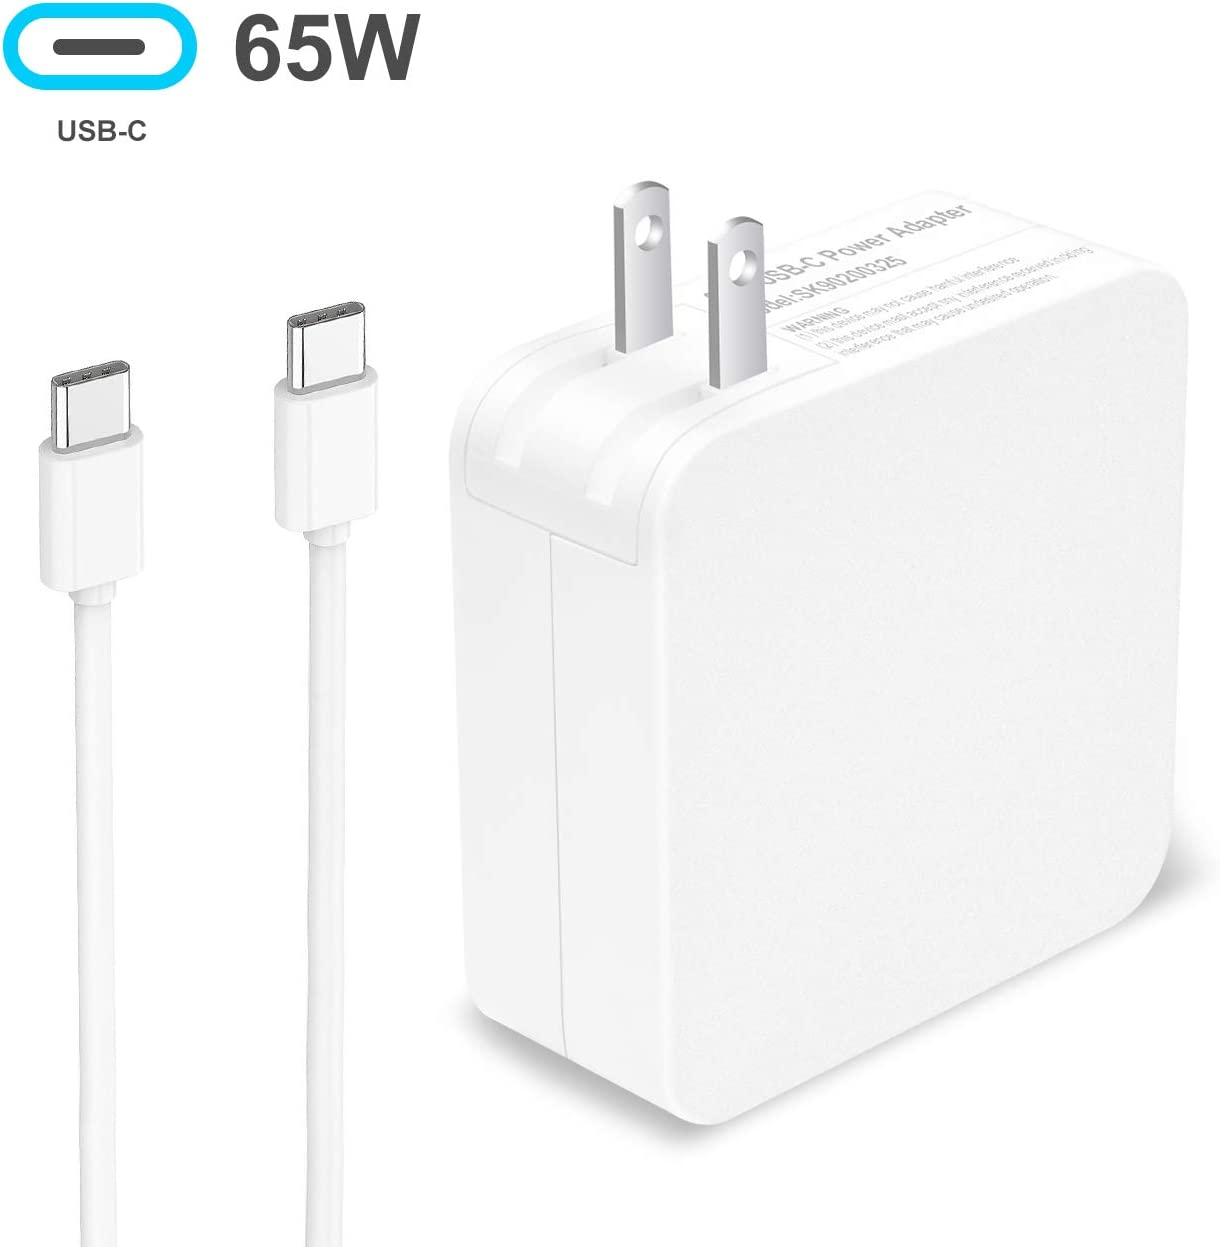 65W USB Type-C AC Adapter Charger for ASUS chromebook 13 ZenBook 3 UX390 MacBook/Pro HP Acer Huawei, Dell XPS 12 13,Lenovo Yoga 910,Yoga 720-13,Thinkpad x1Tablet USB-C C Cable Power Supply Cord